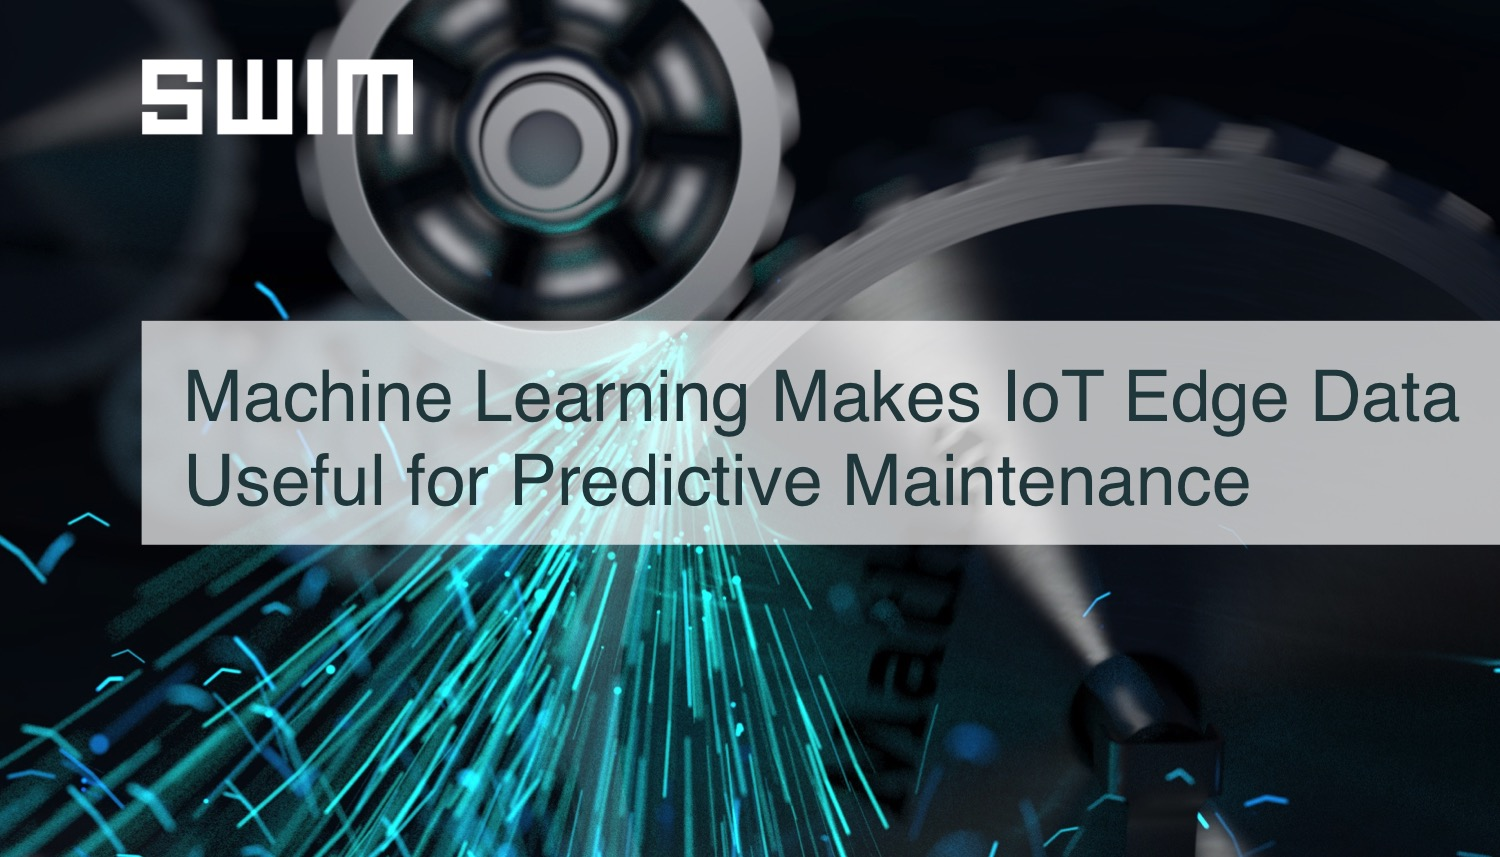 Machine Learning Makes IoT Edge Data Useful for Predictive Maintenance | Swim Inc.